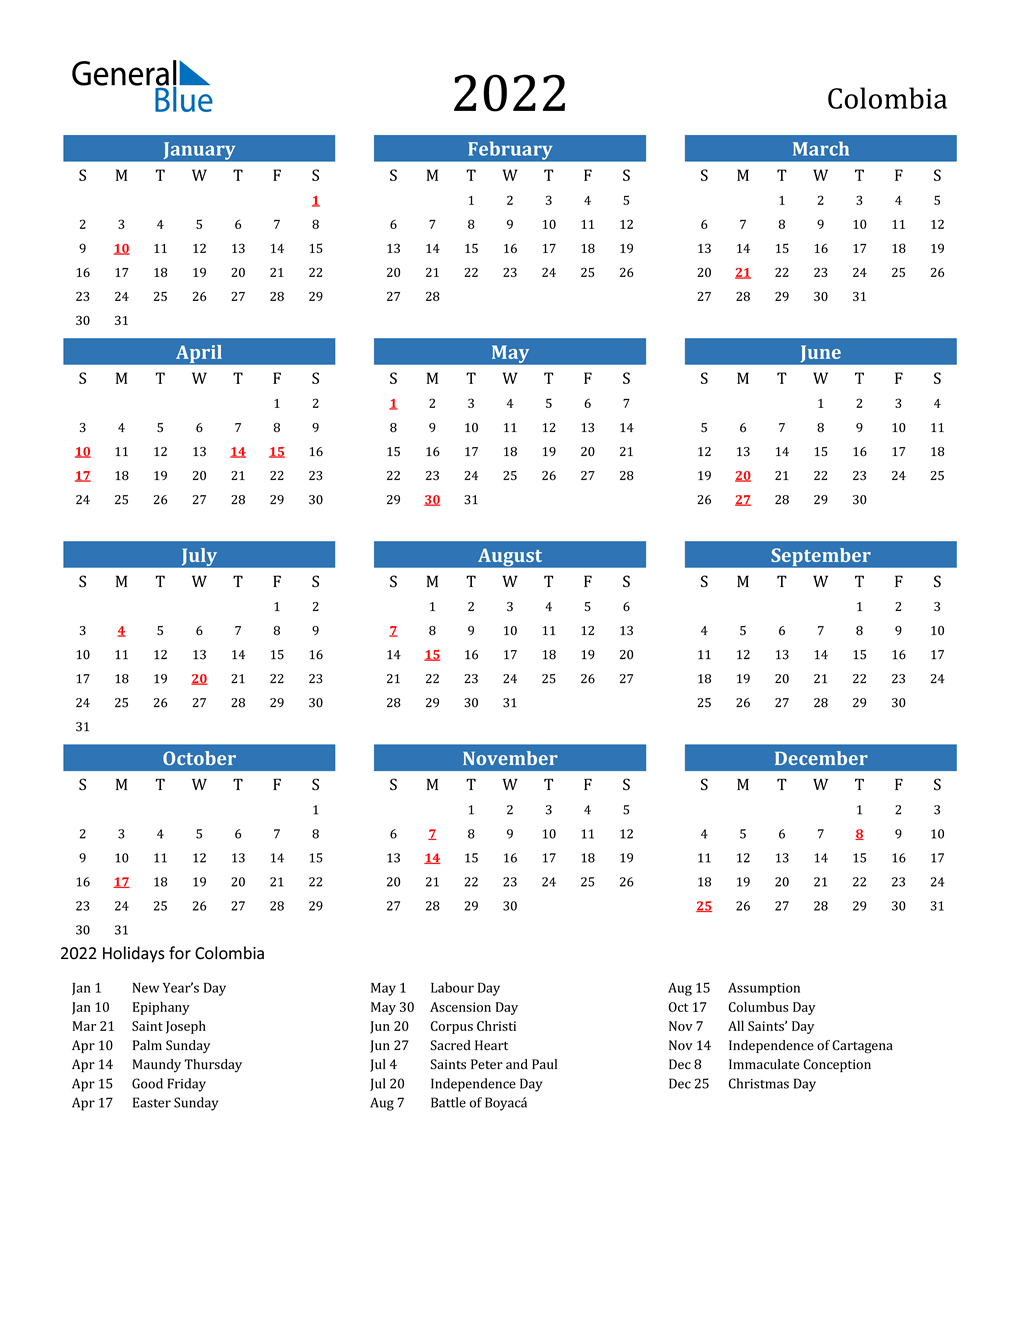 2022 Calendar With All Holidays.2022 Colombia Calendar With Holidays